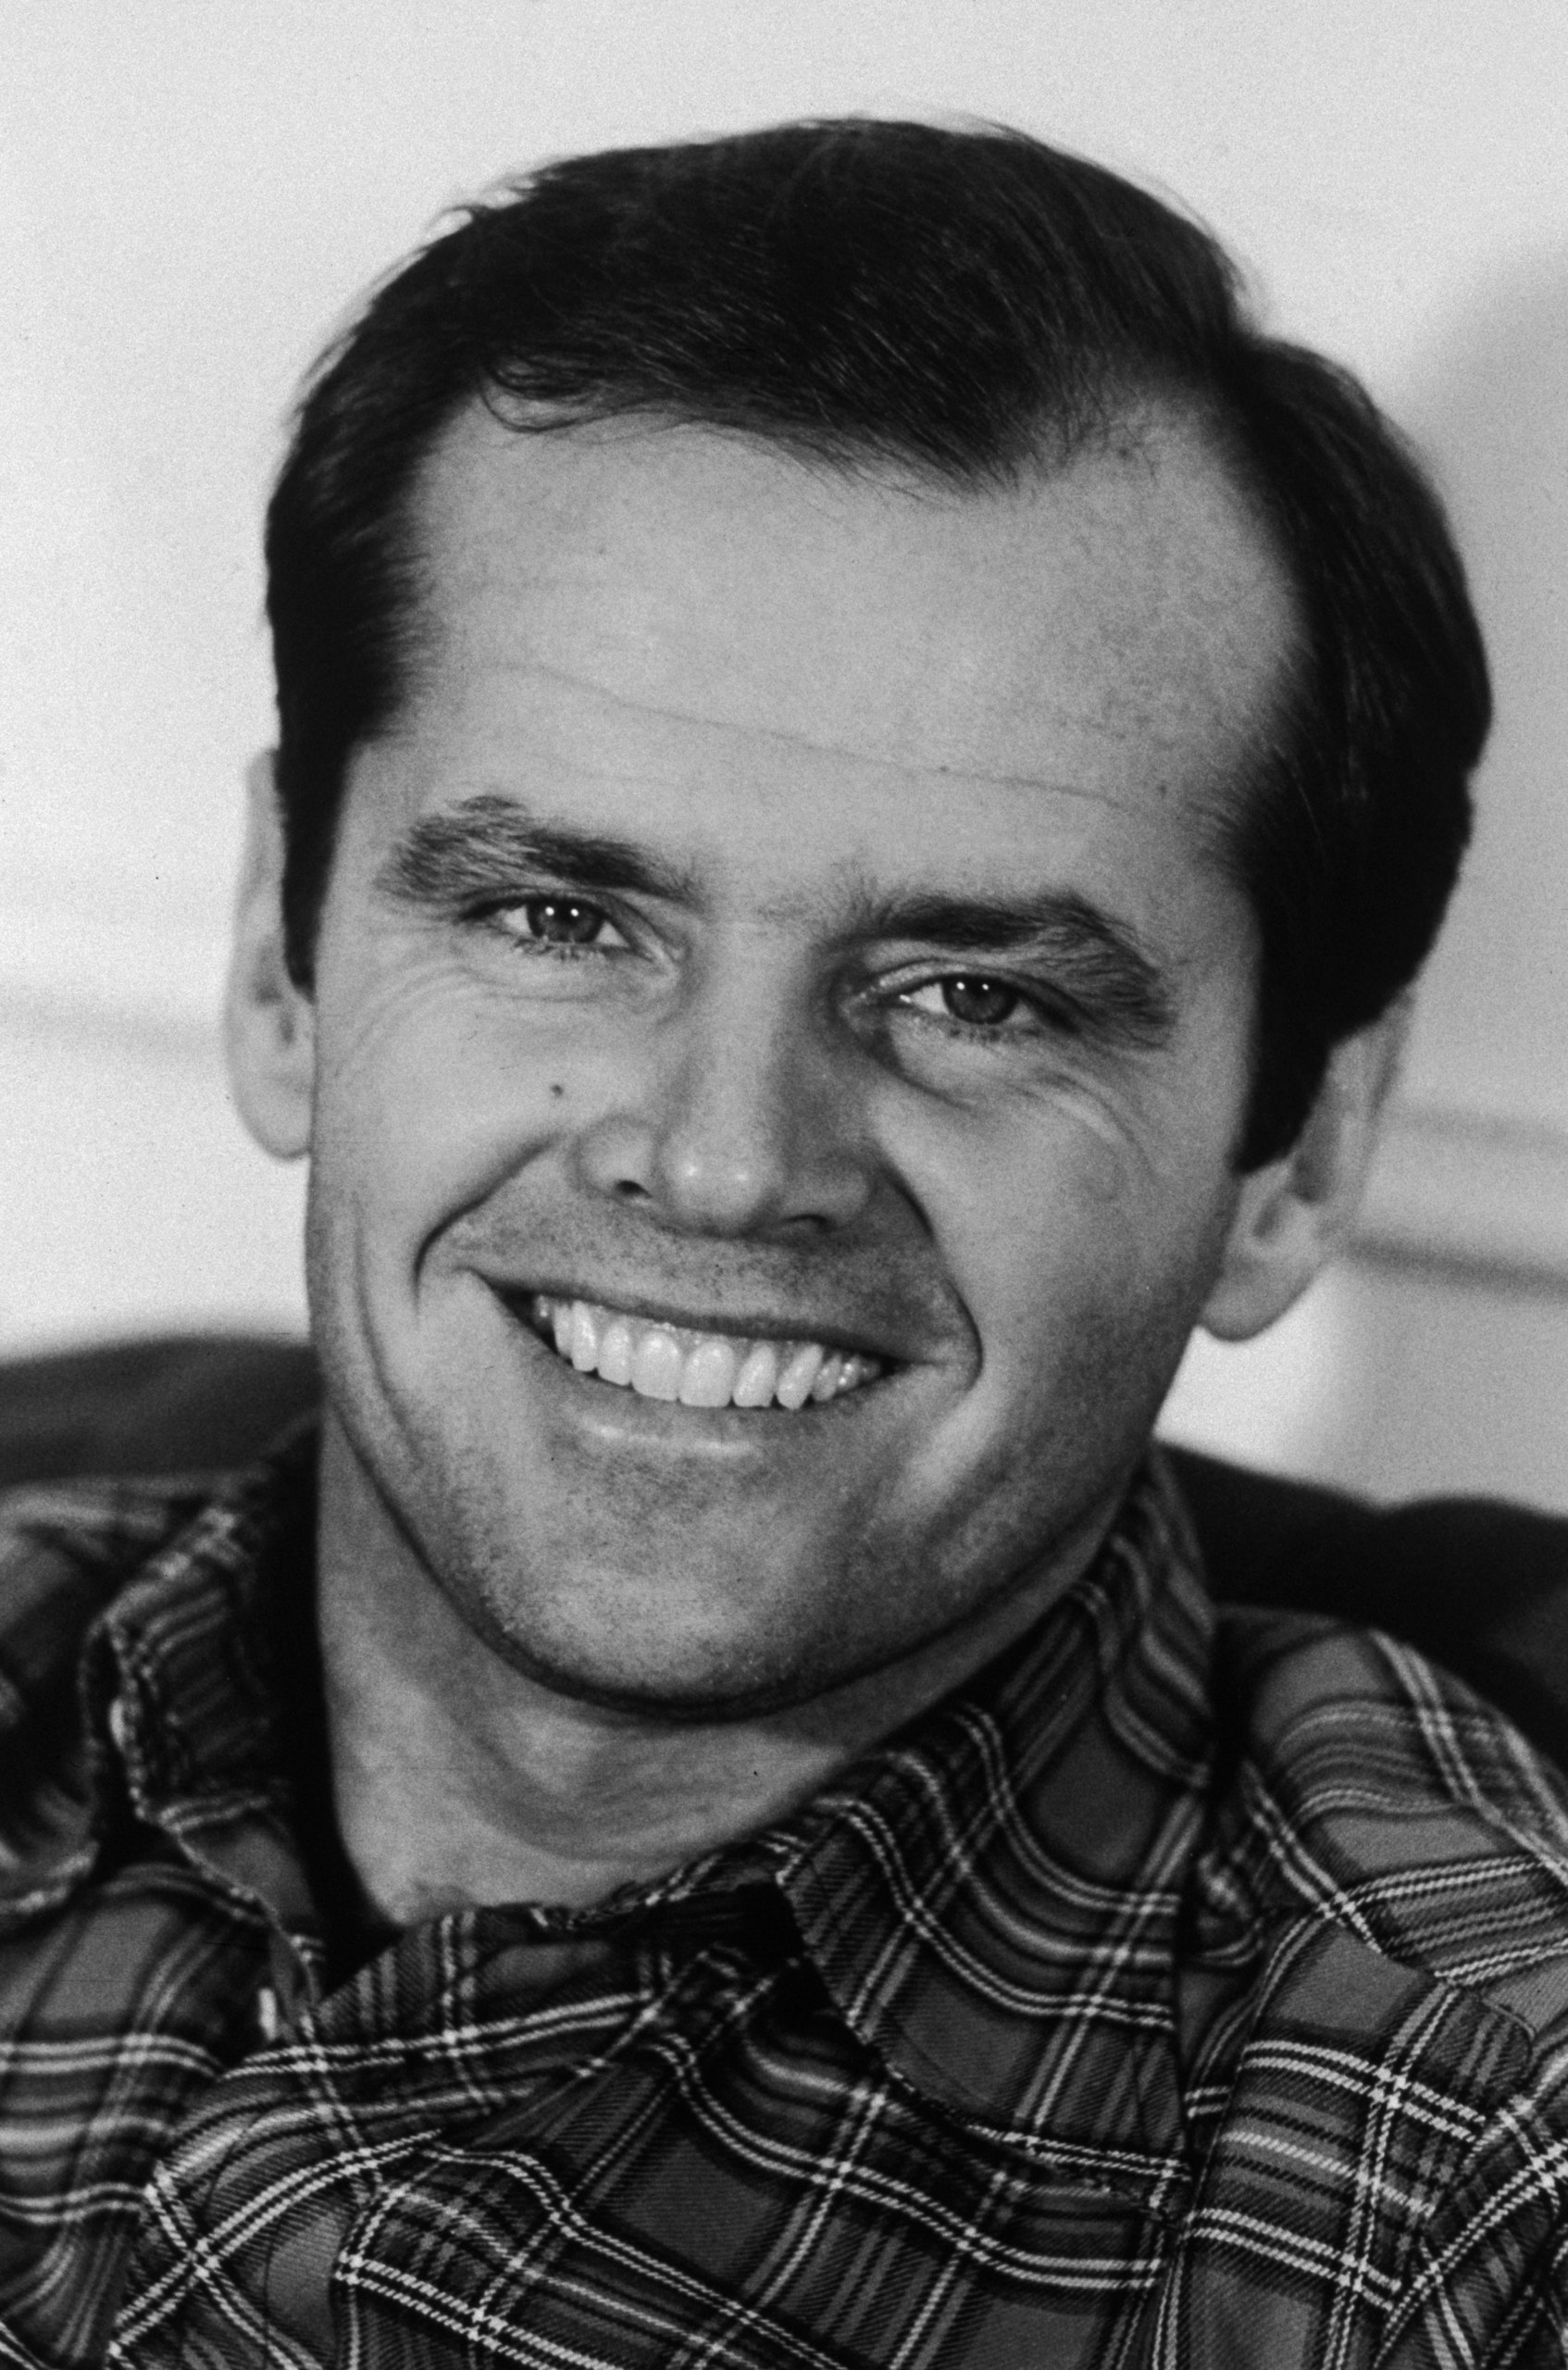 jack nicholson images jack nicholson hd wallpaper and background